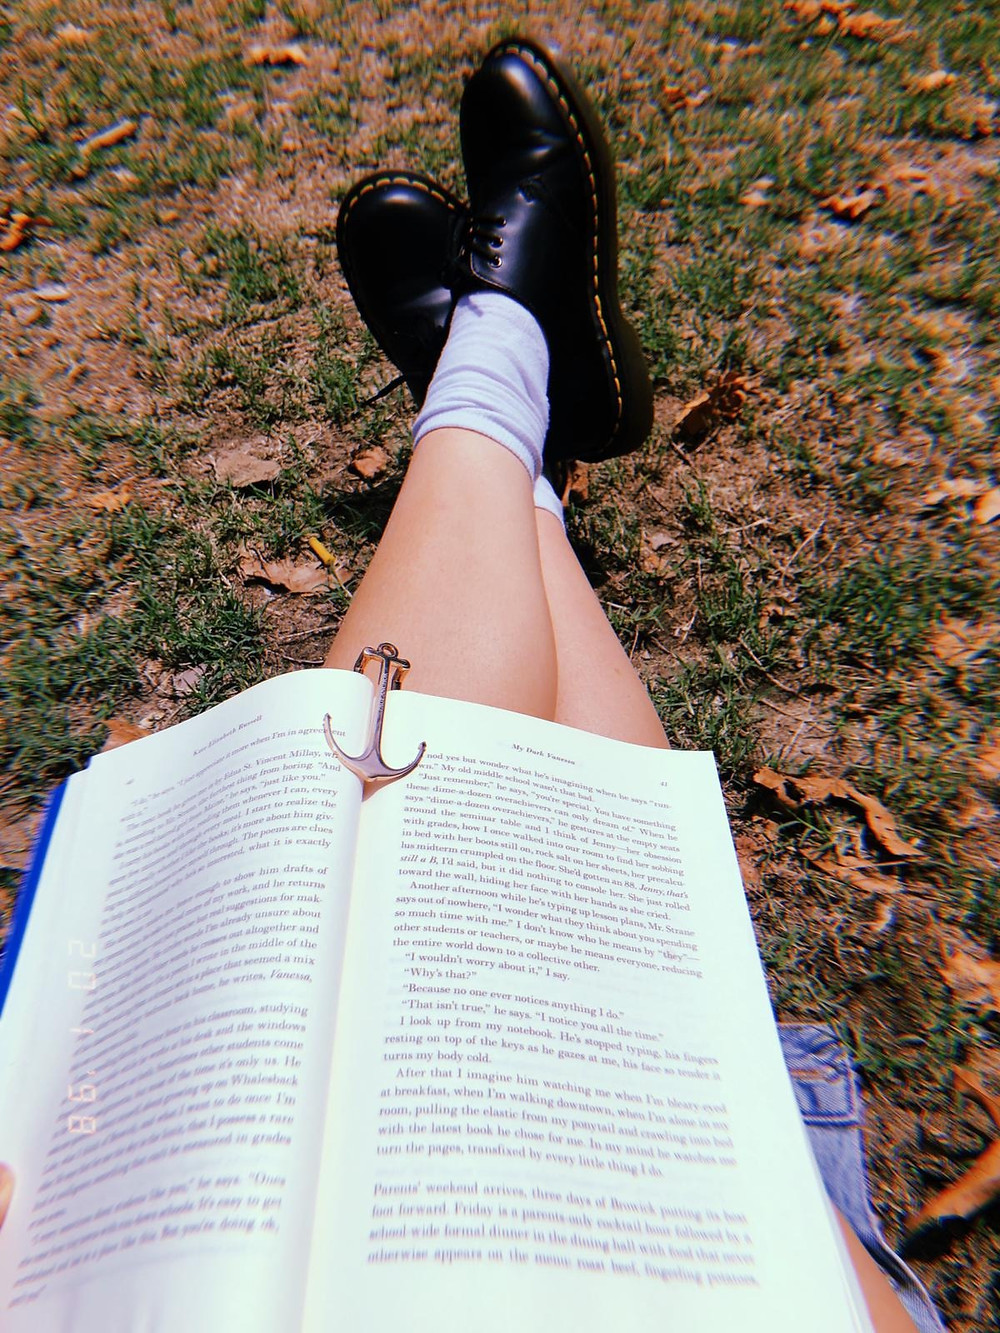 Open copy of My Dark Vanessa on the lap of someone sitting on a sunny lawn.